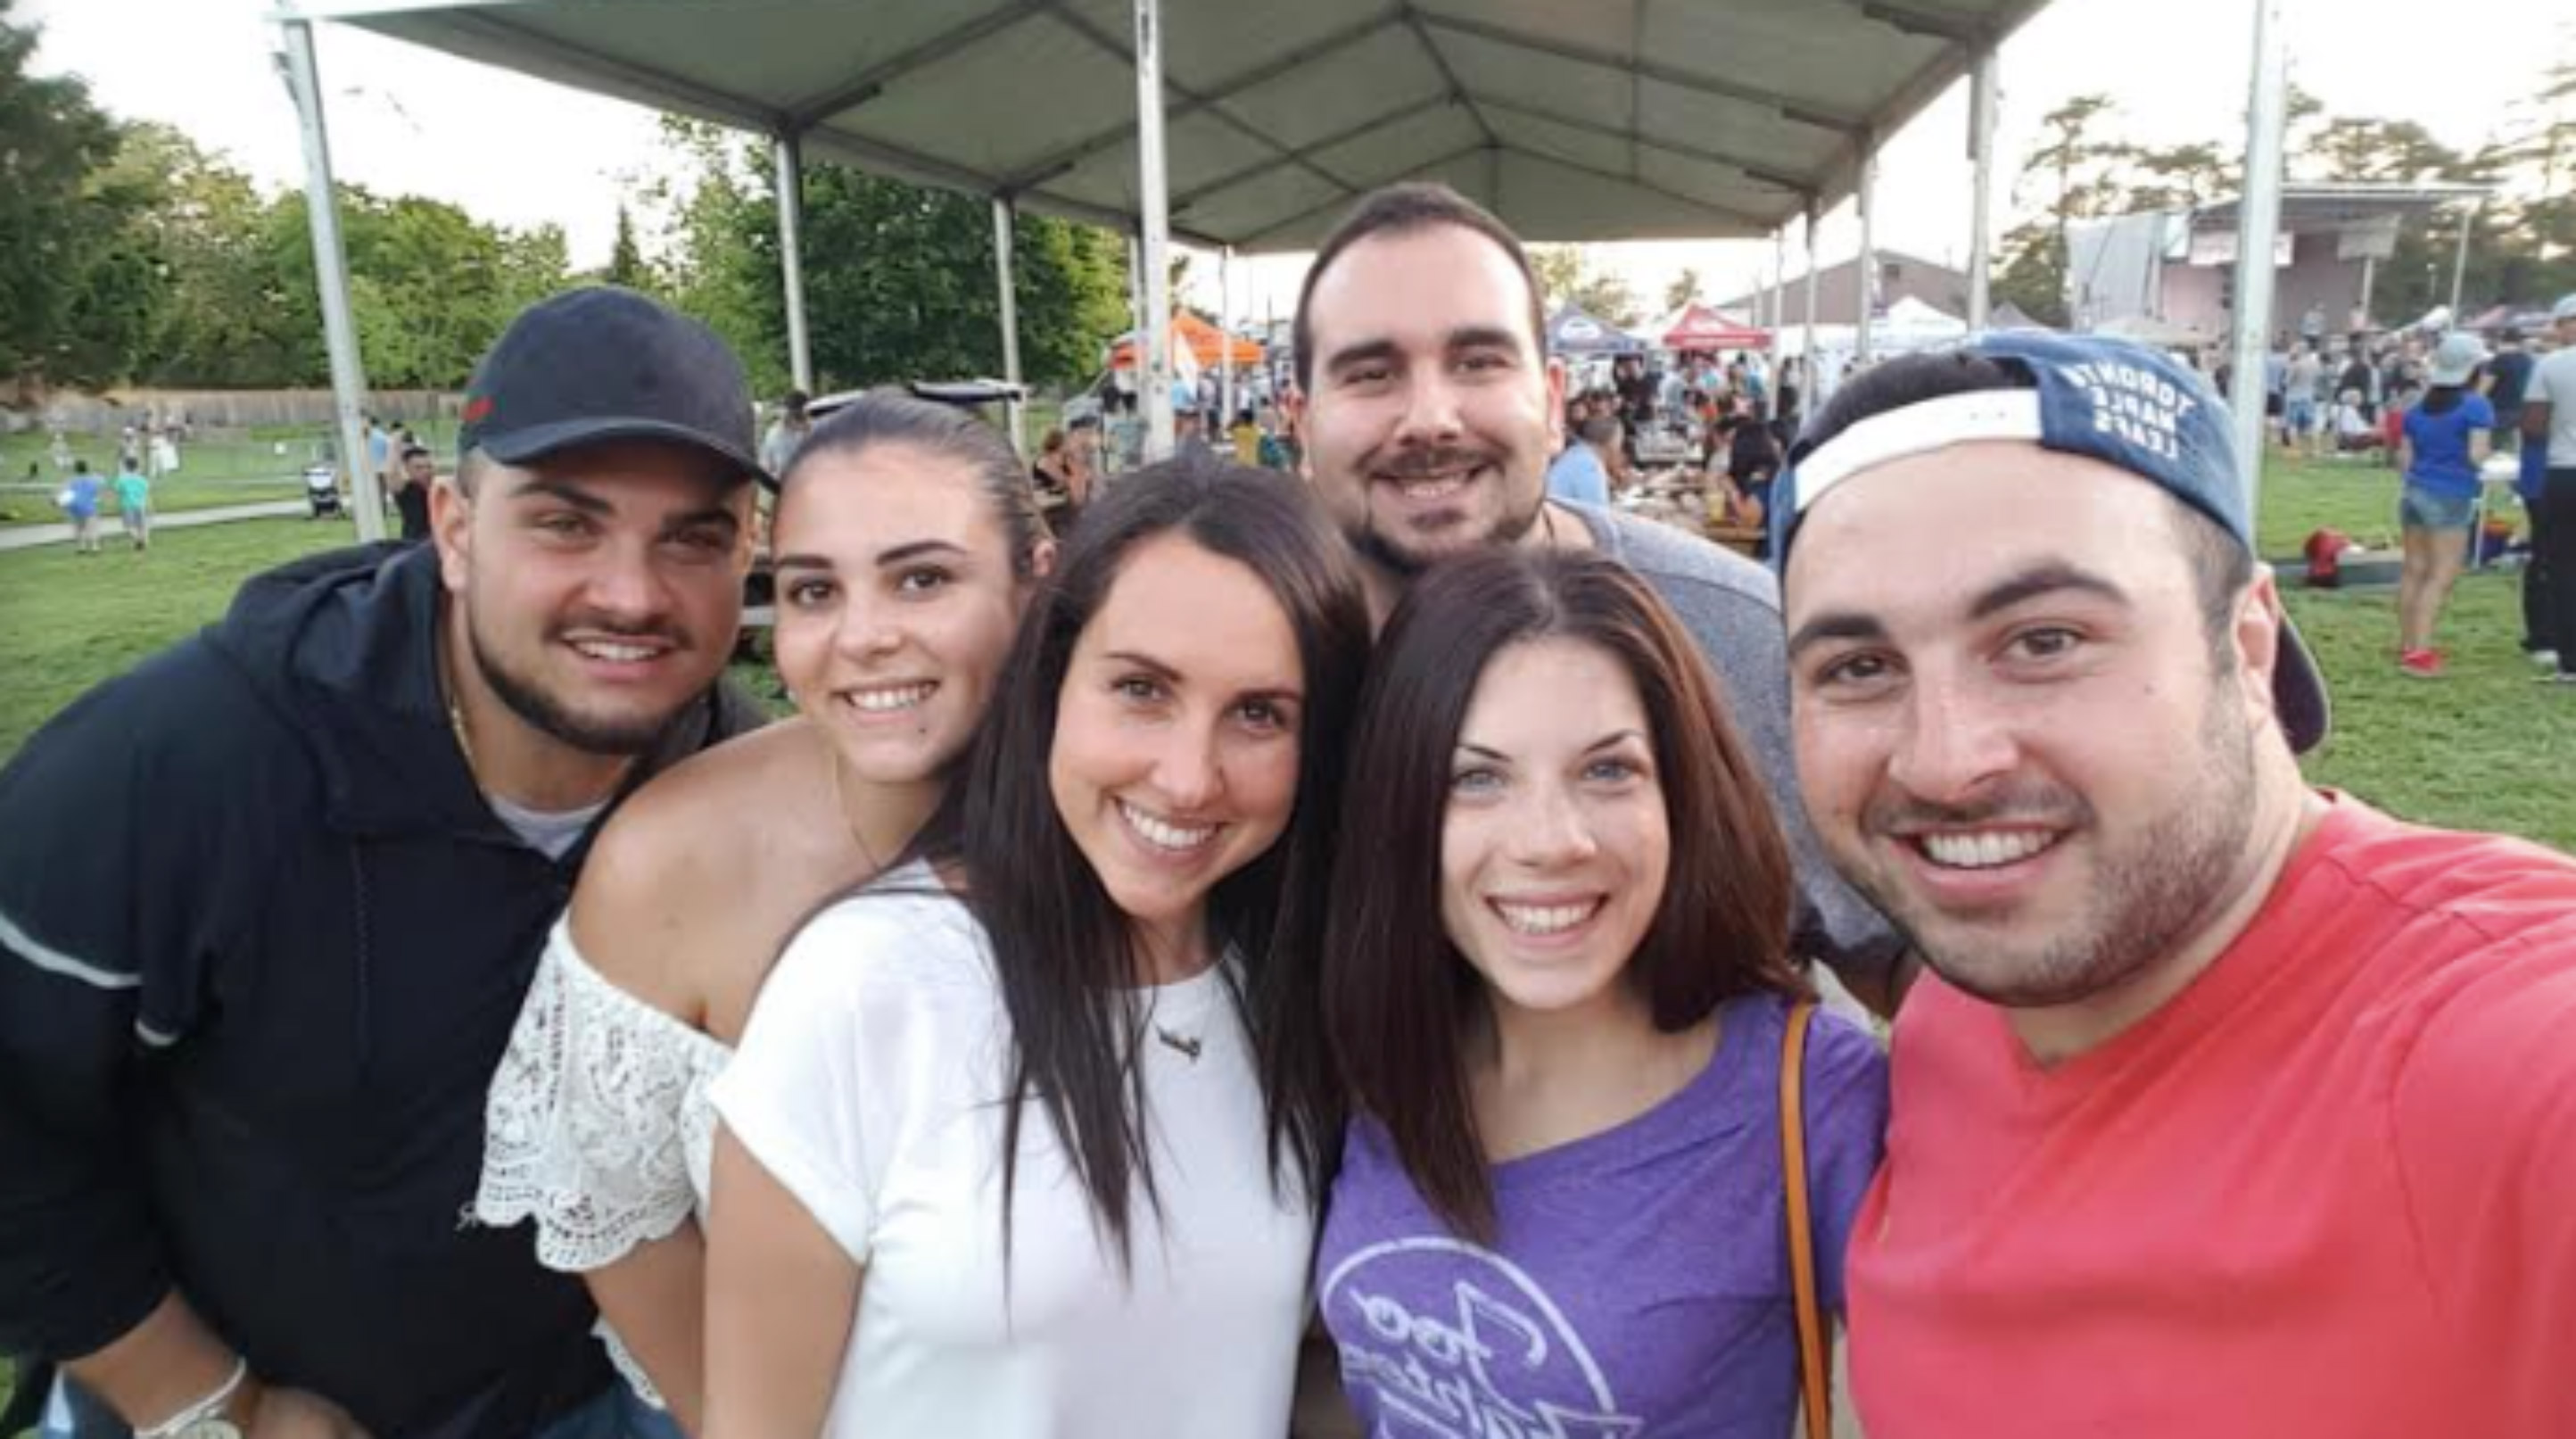 Giulia and friends smiling at an event.